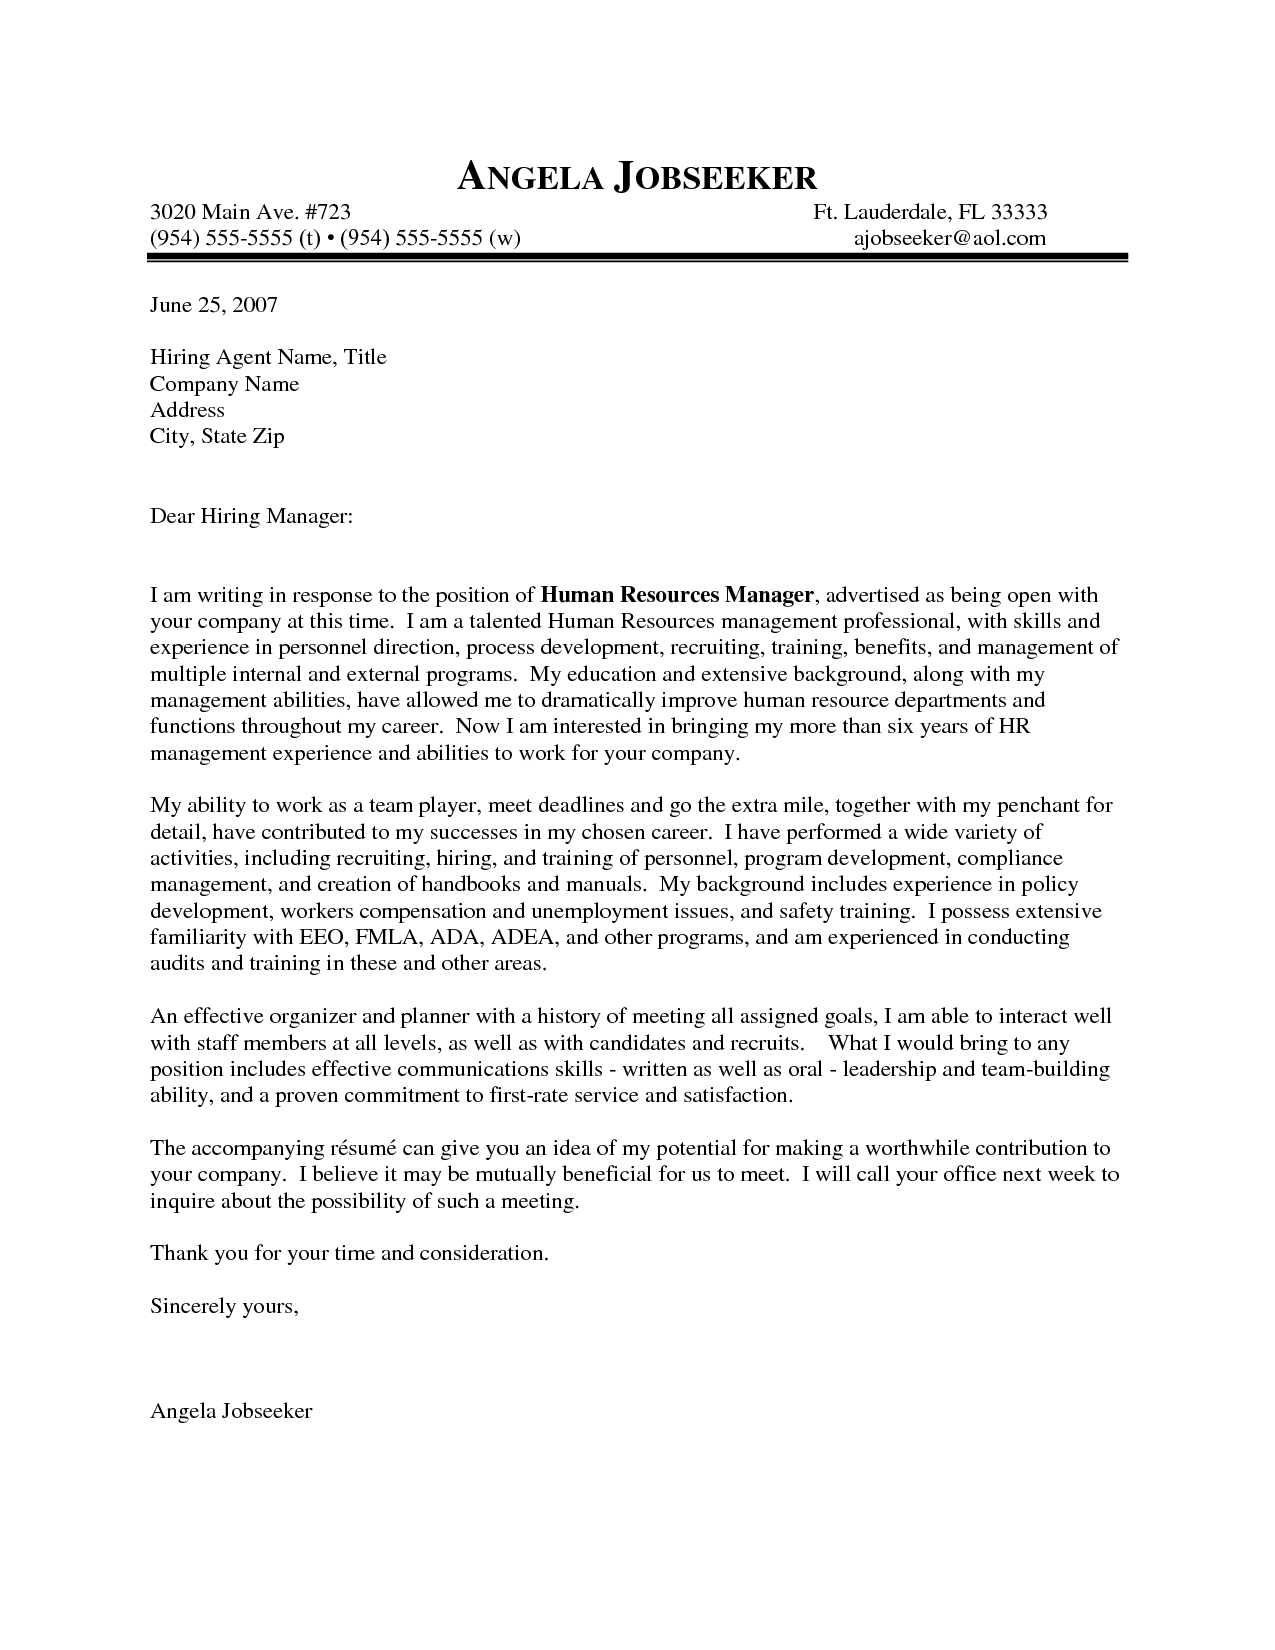 Outstanding Cover Letter Examples Hr Manager Cover Letter Example Good Cover Letter Examples